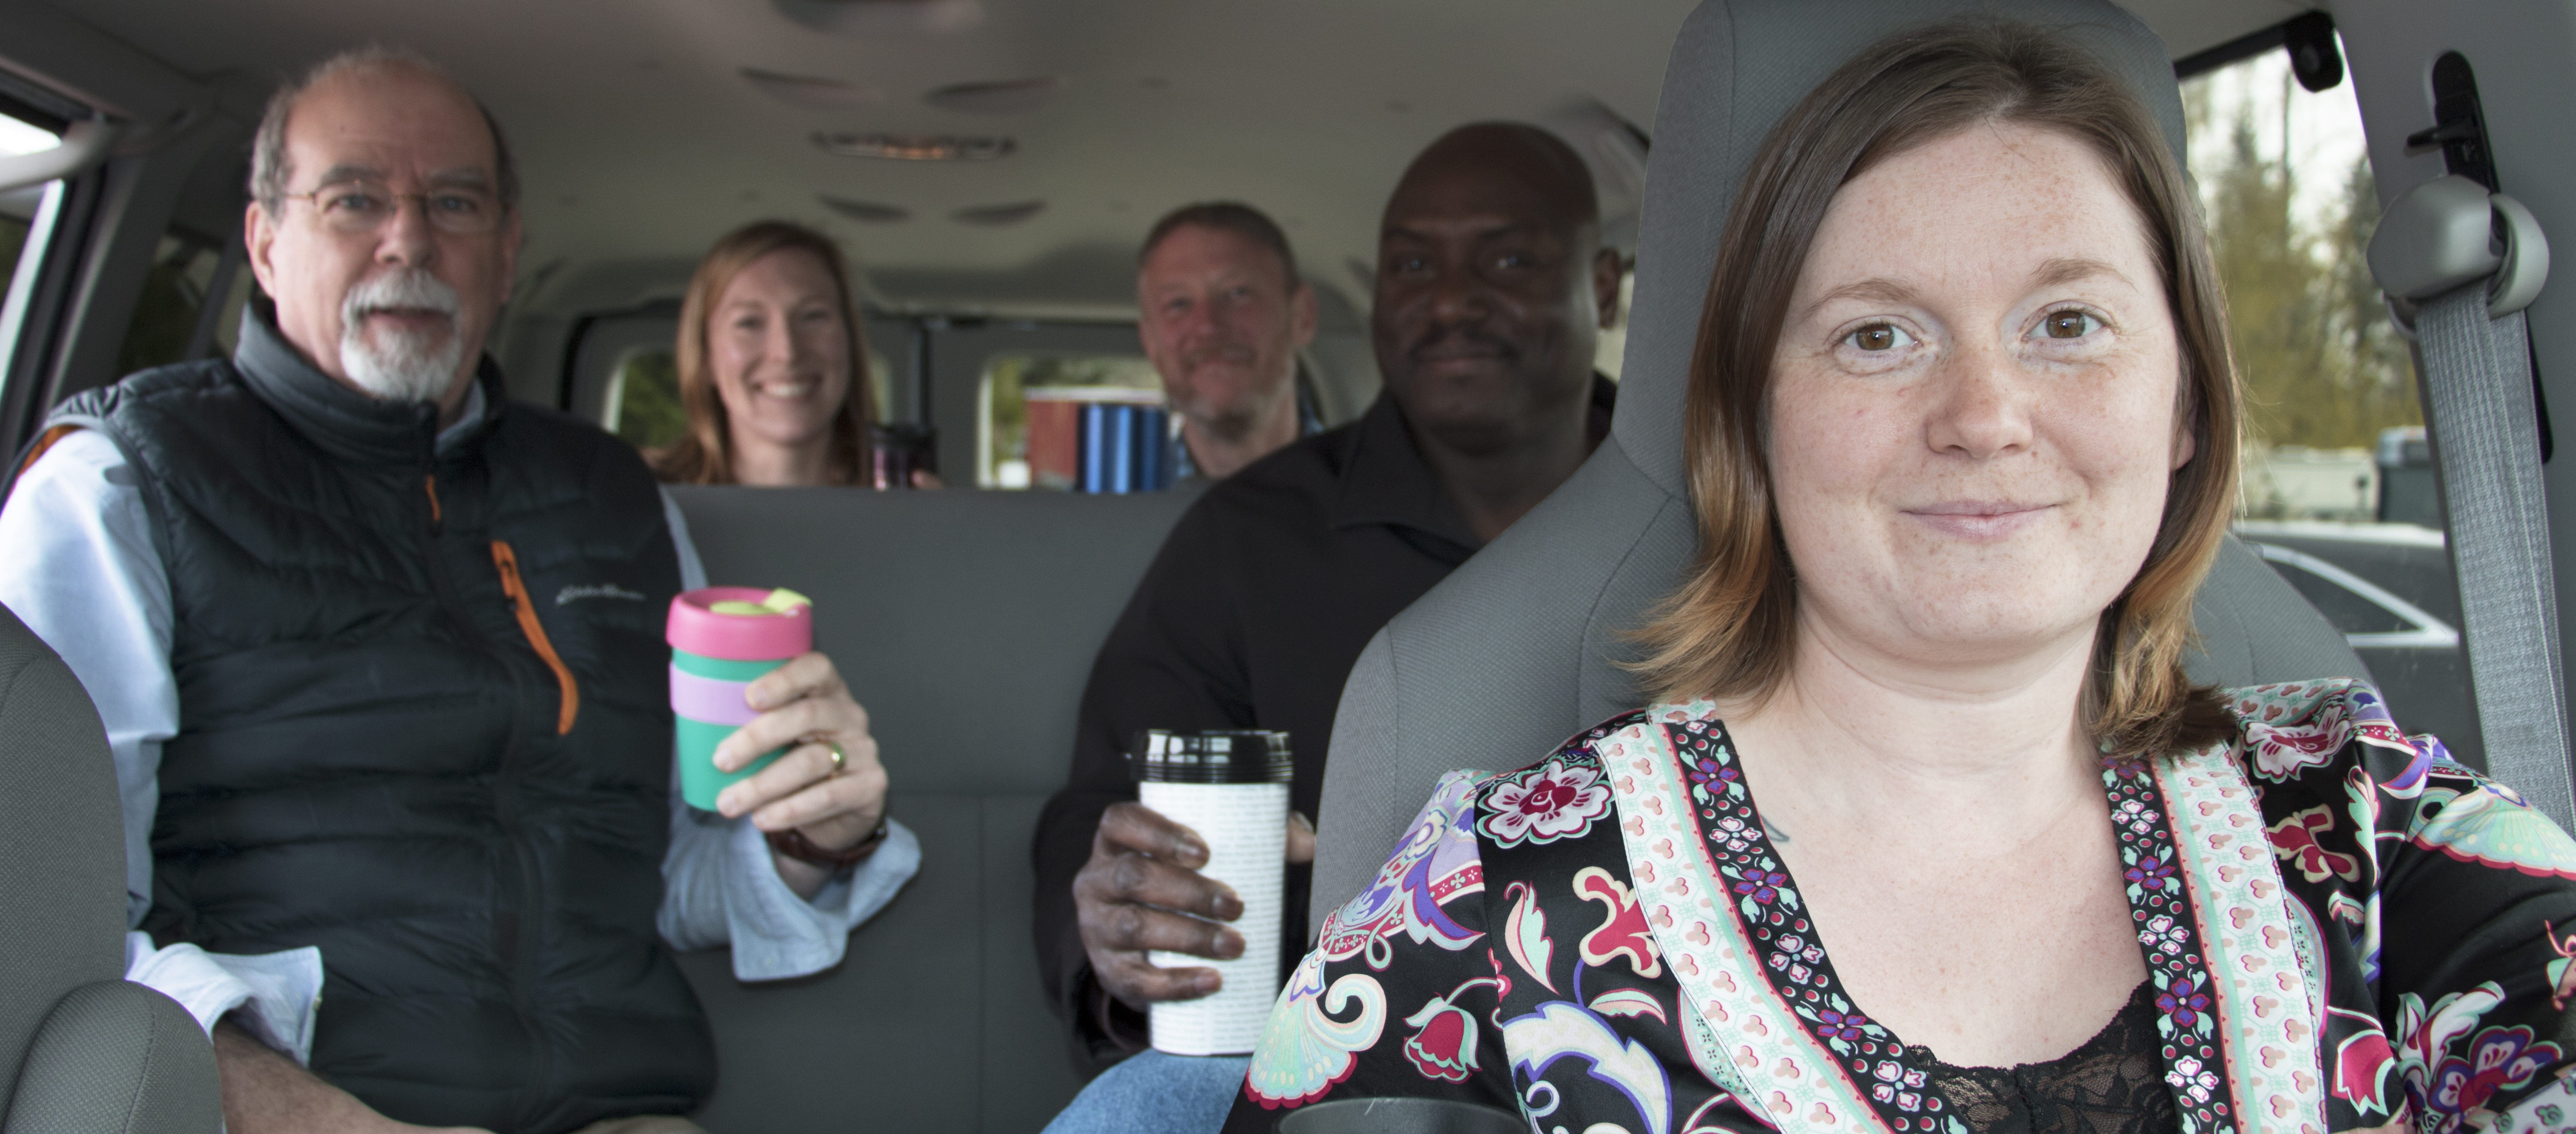 Five people with coffee in a vanpool